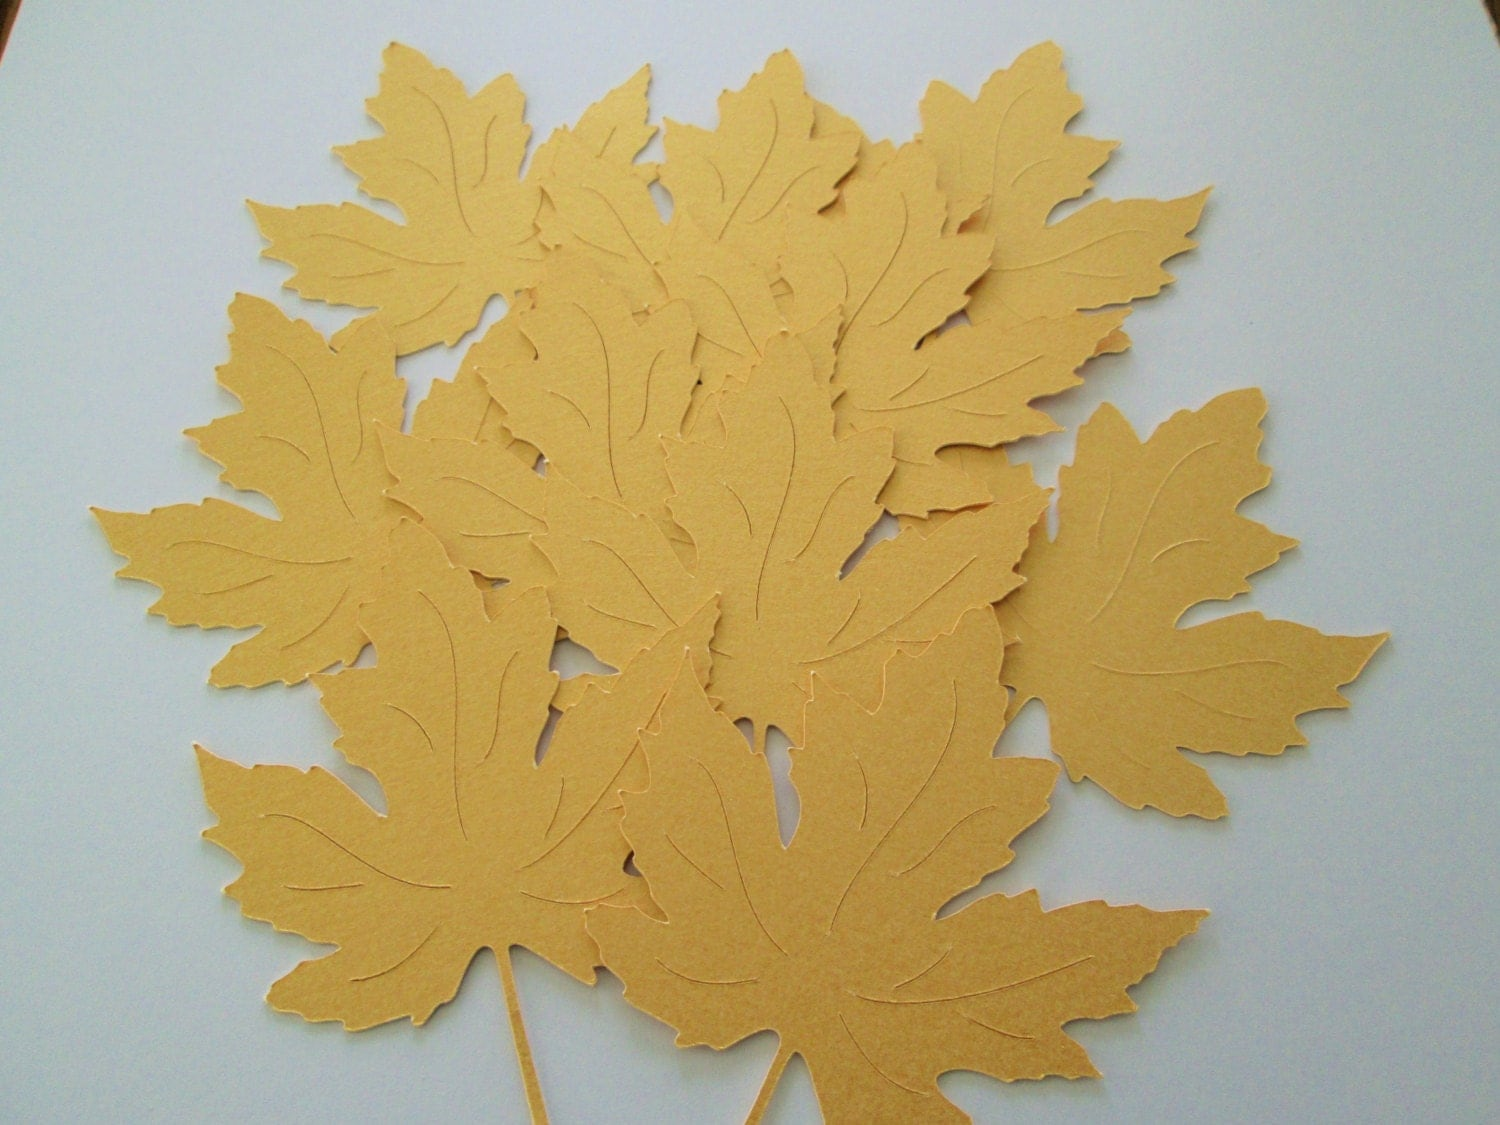 30 Large Metallic Gold Fall Maple Leaves Die Cuts